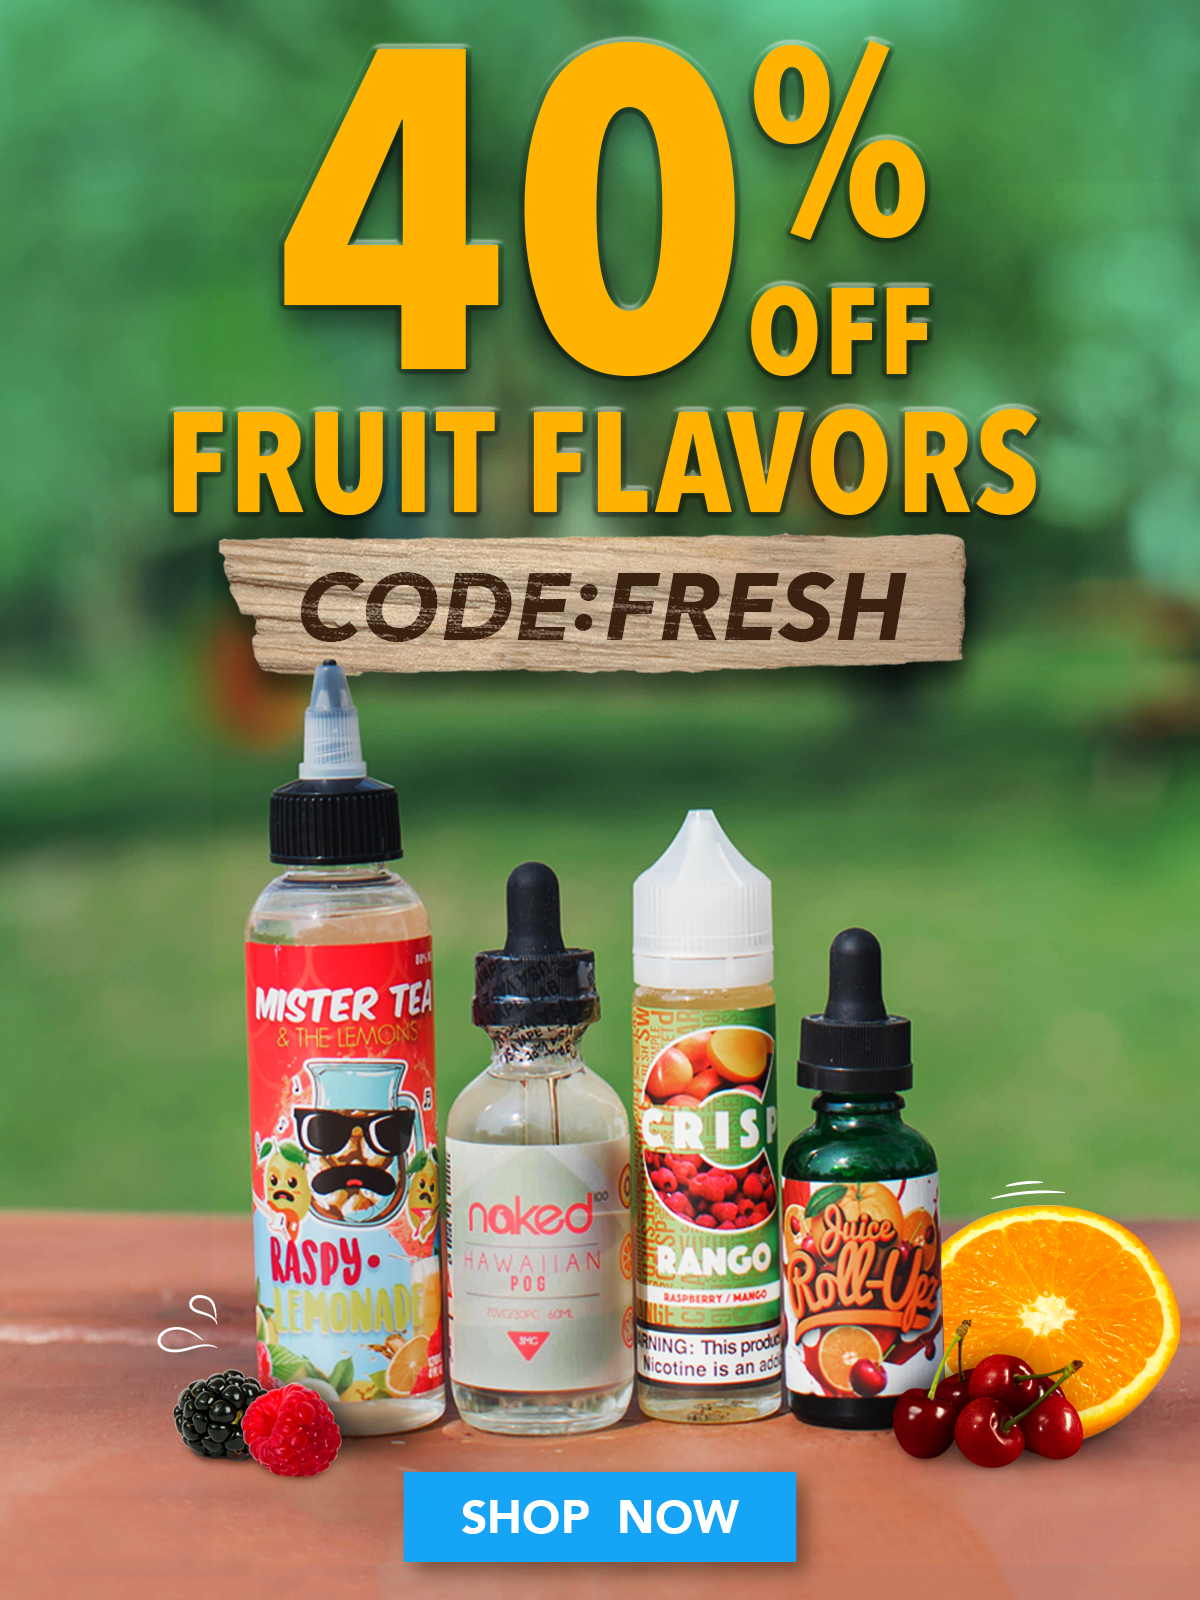 40% OFF FRUIT FLAVORS. CODE: FRESH